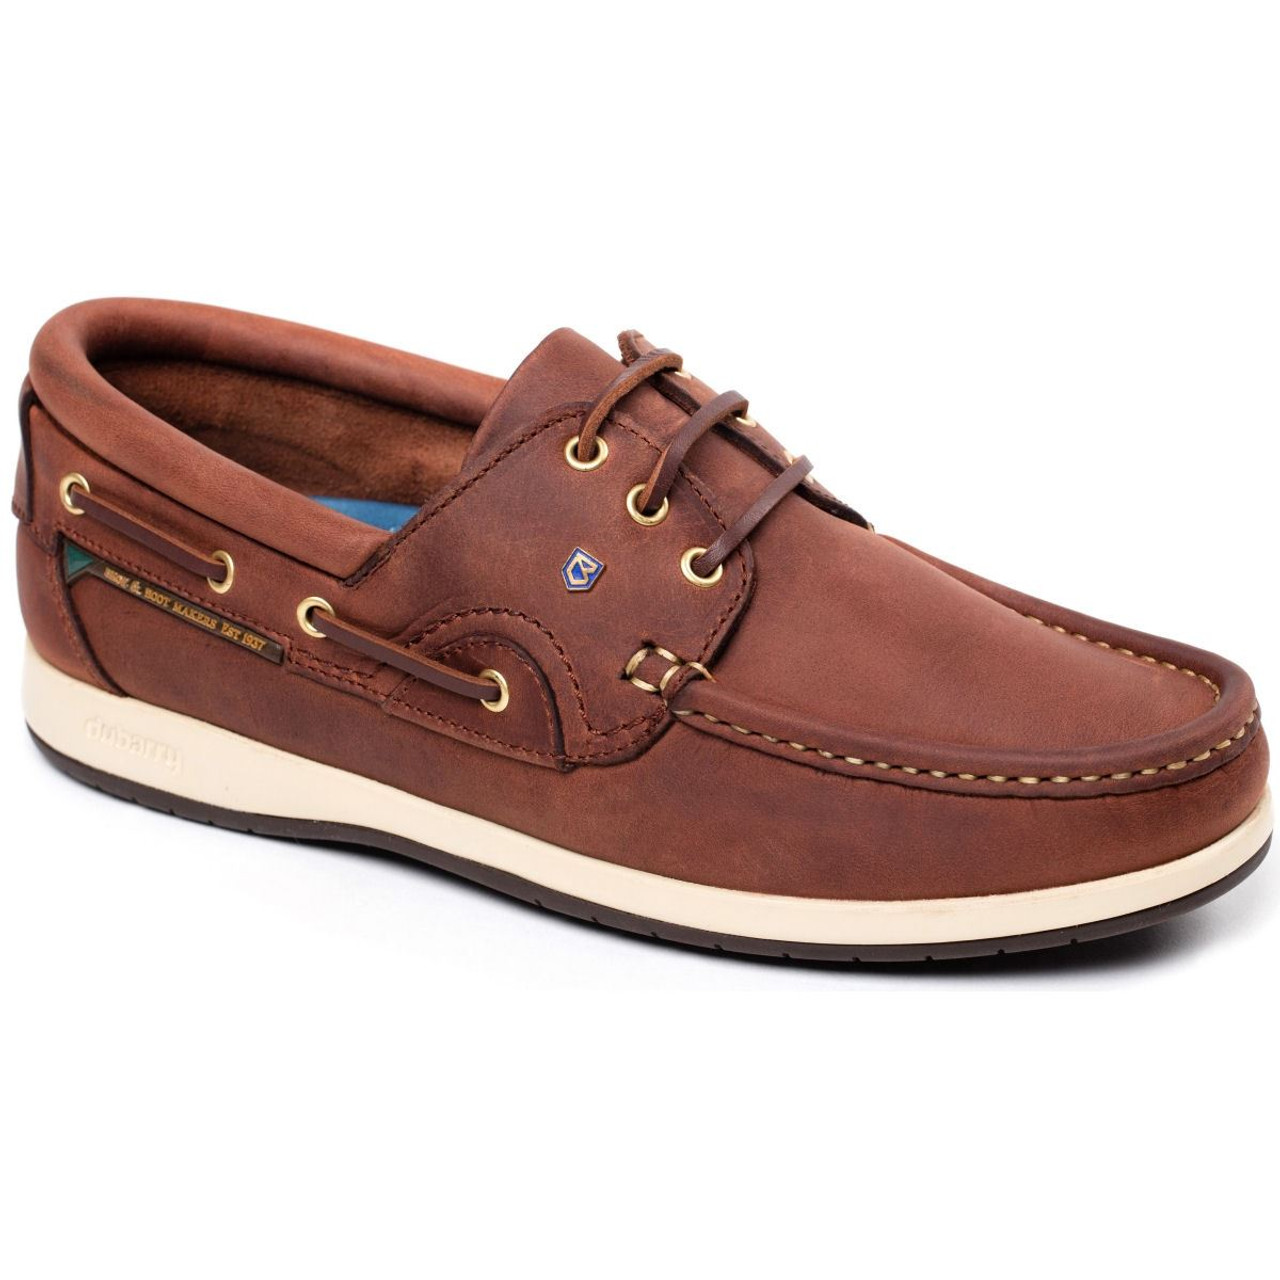 Dubarry Commodore X LT Deck Shoes in Chestnut